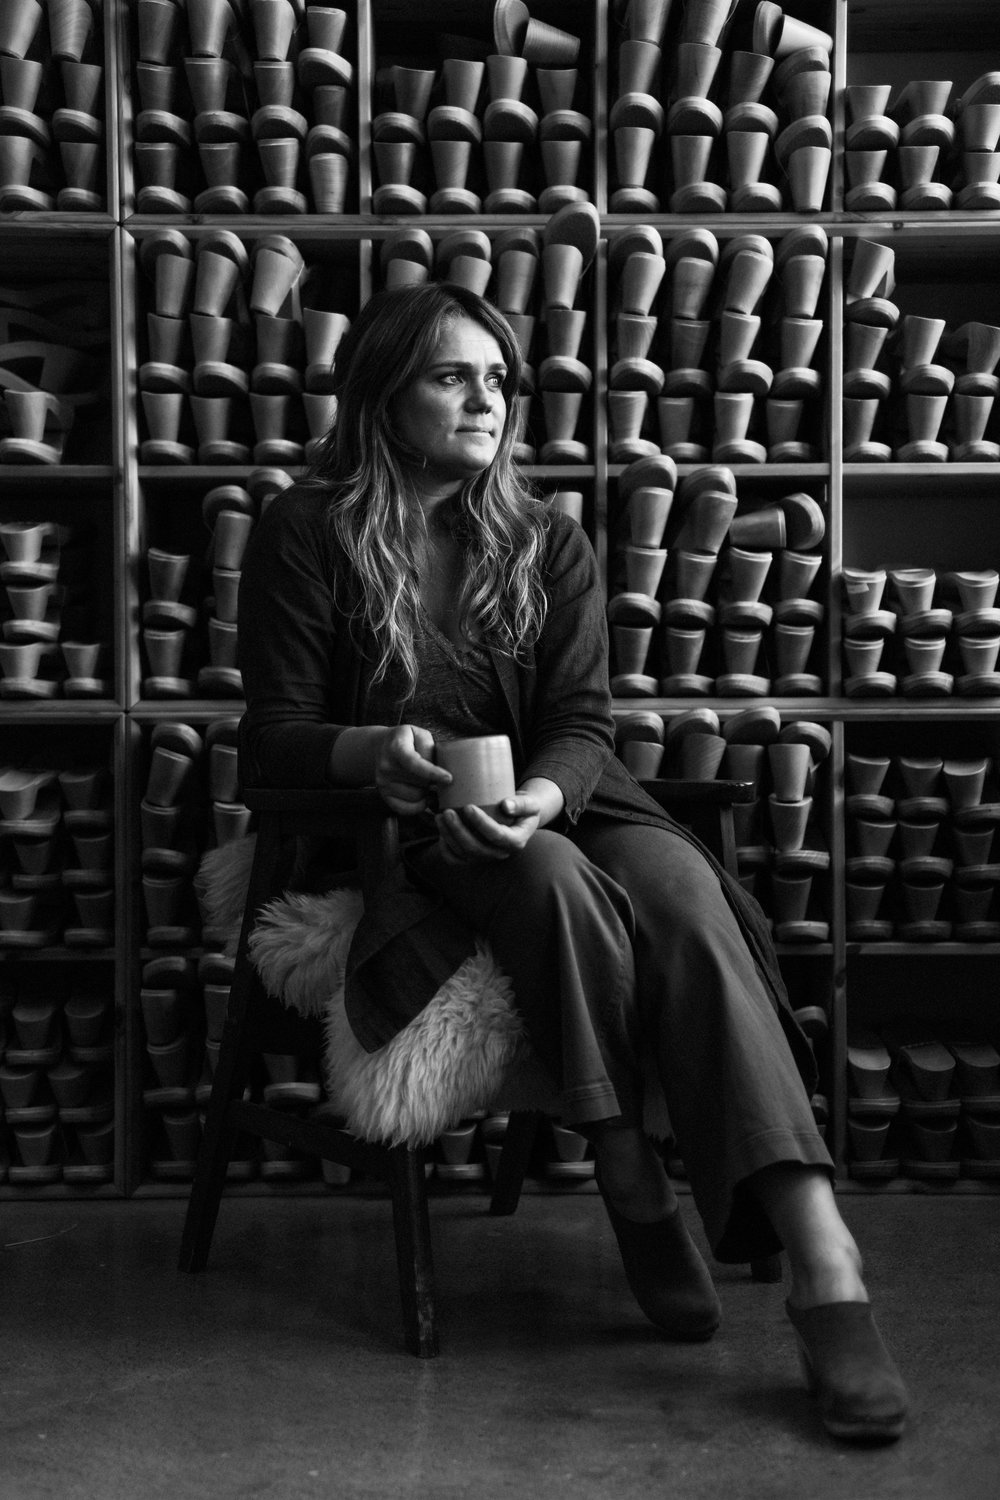 Isobel Schofield, founder and designer of BRYR Clogs